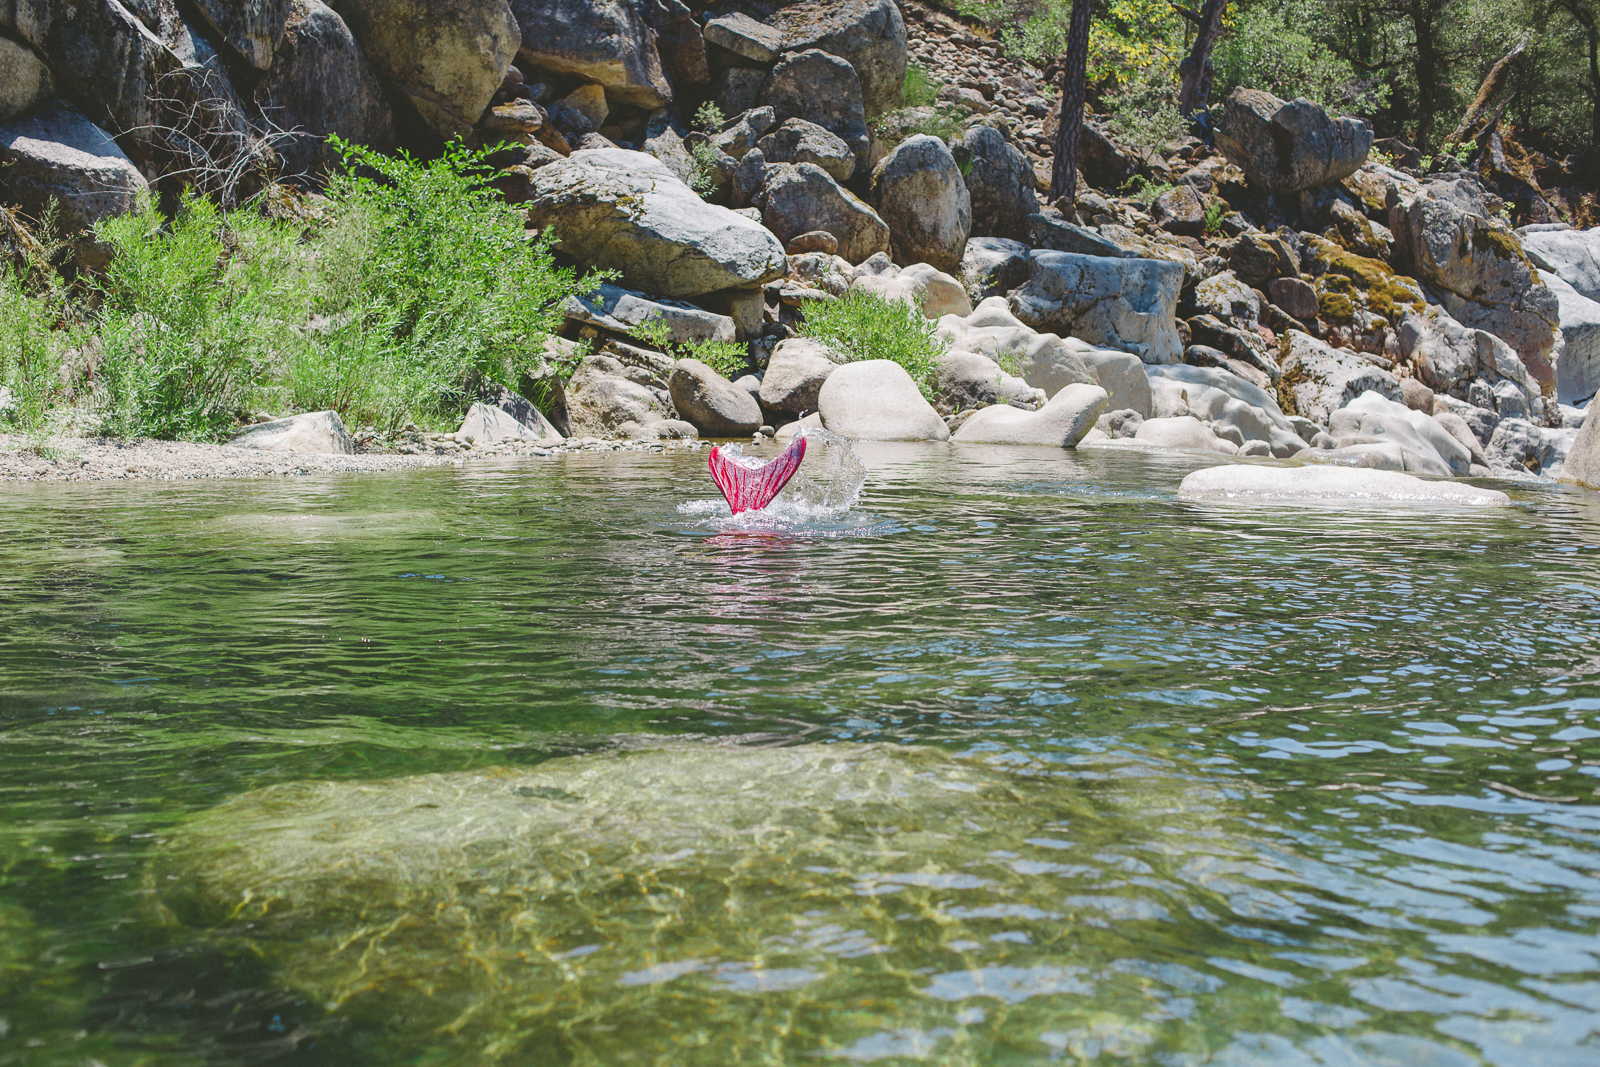 Mermaid flipping her tail in the Yuba River